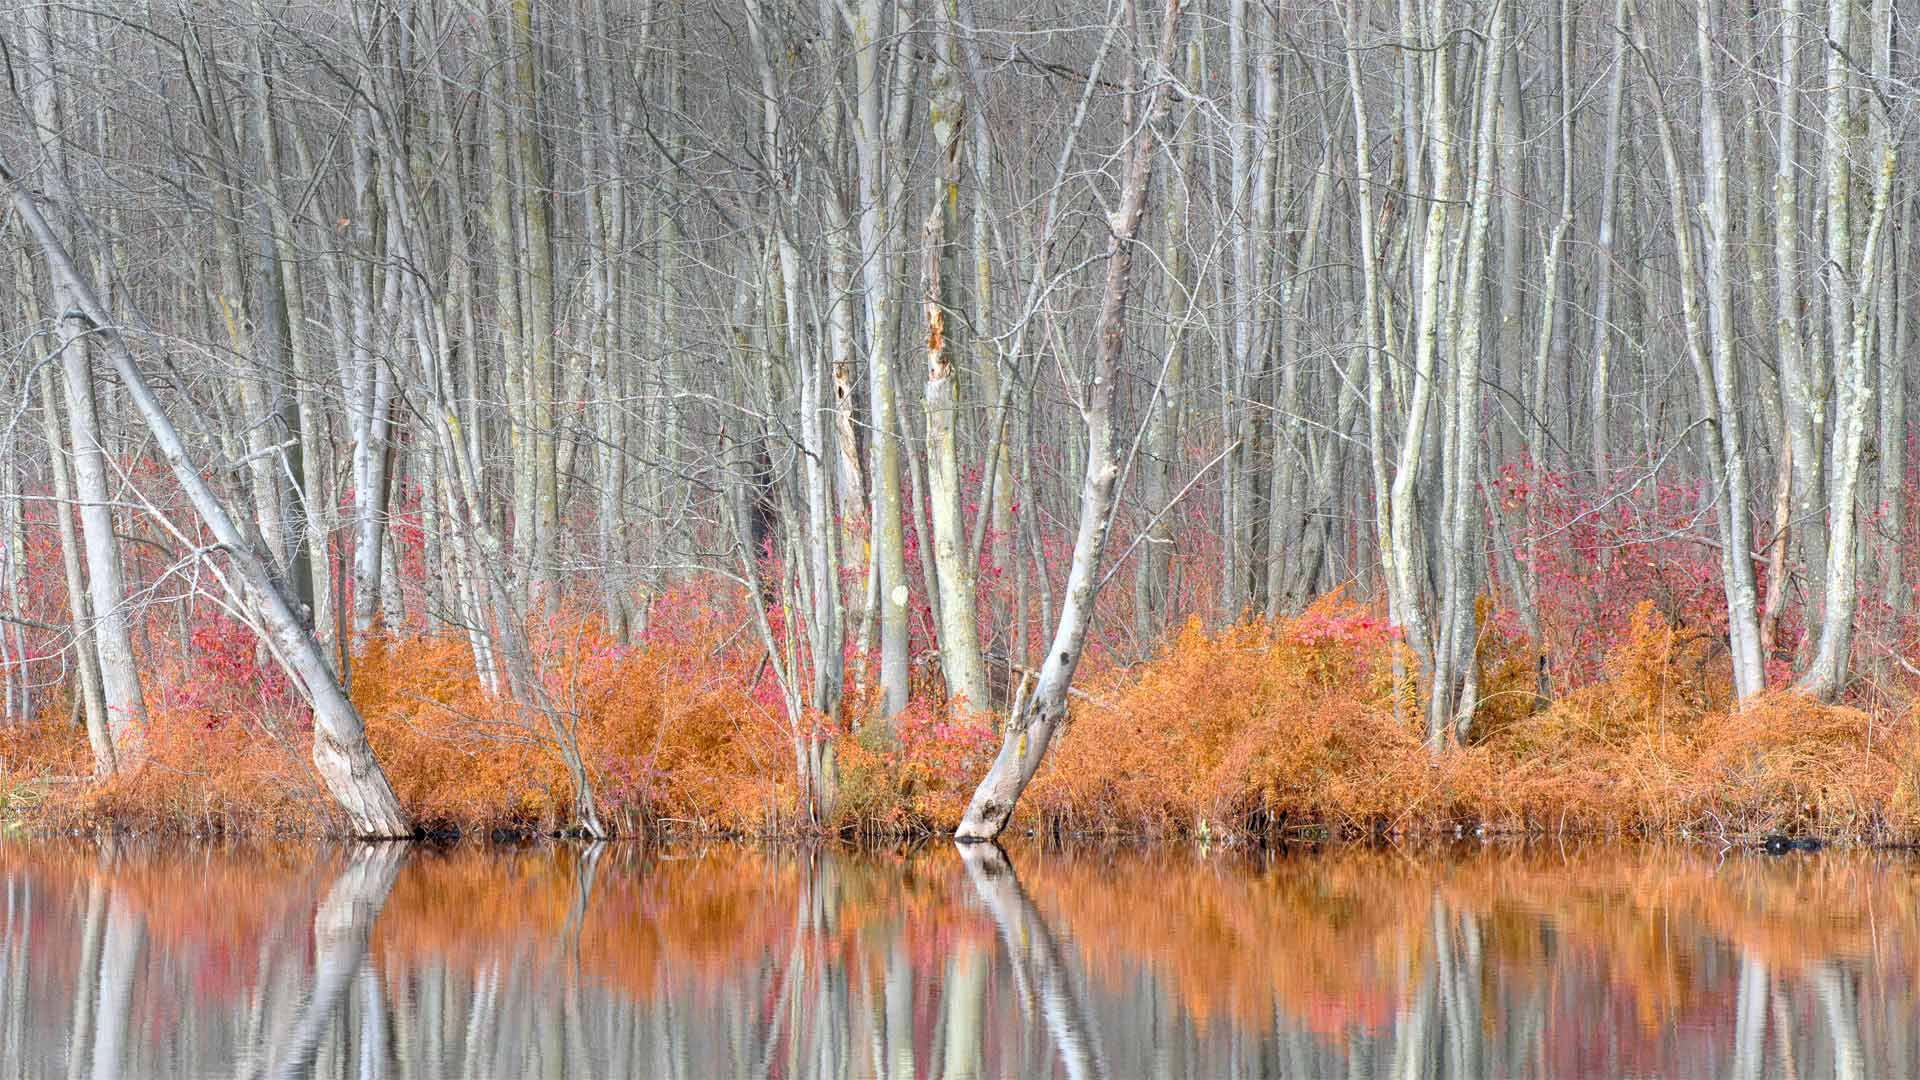 Bare trees and autumn ferns in Beaver Lake Nature Center, New York (© Chris Murray/Alamy)